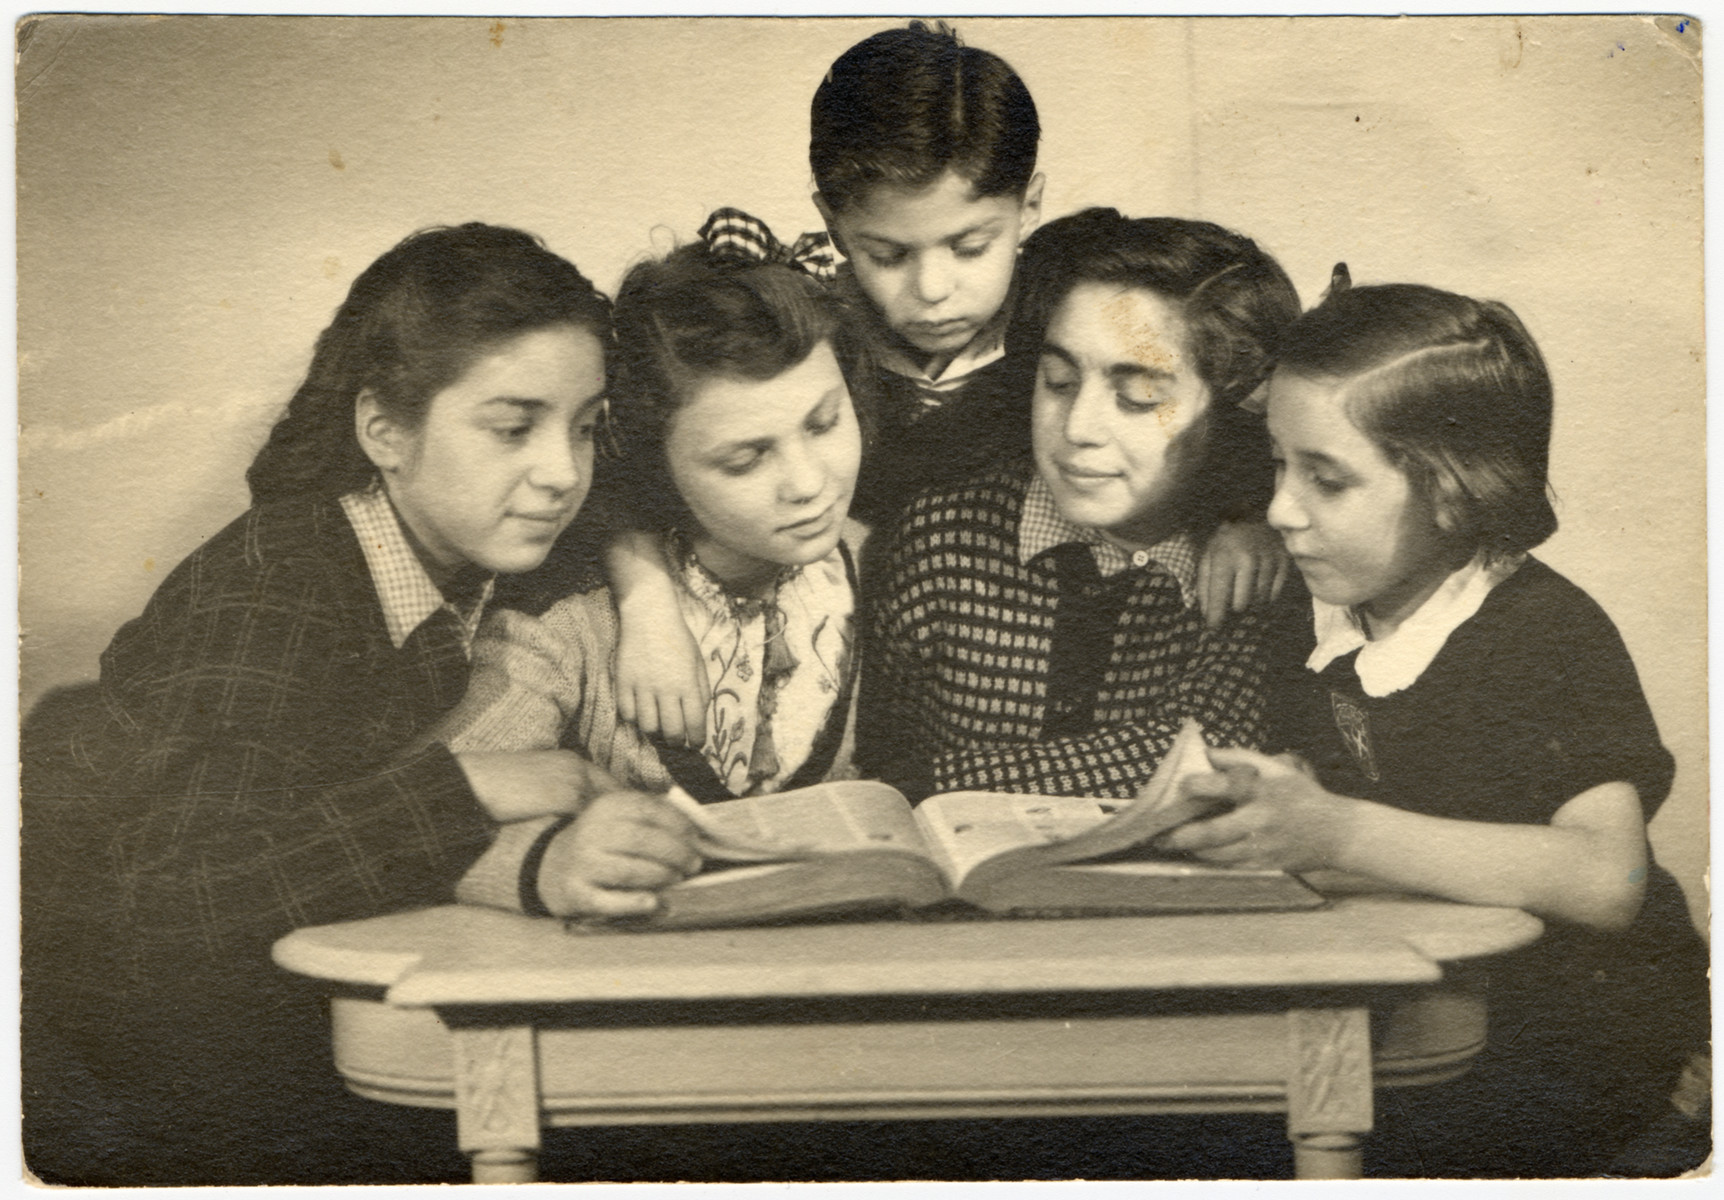 The Feiler children study a book together after their return to Paris from a Jewish orphanage in Andresy.  Pictured are Dora (Denise), Gisele, Michel Feiler, Paulette Feiler and Jacqueline Chessman.